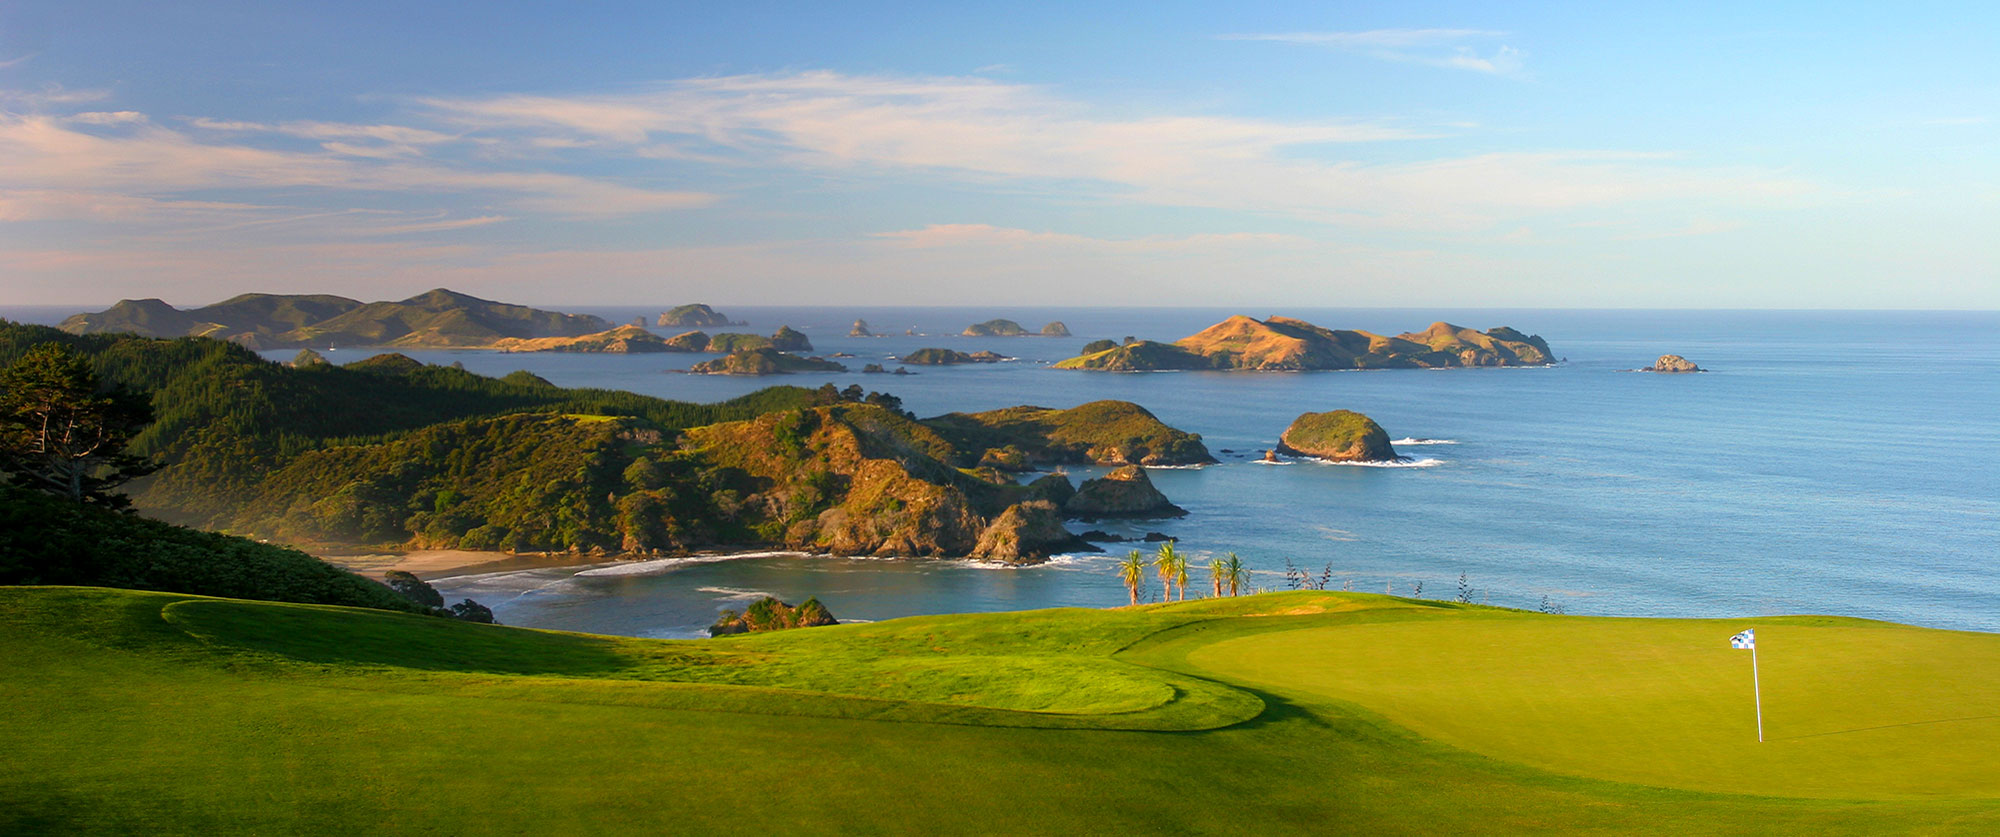 New Zealand Golf at Kauri Cliffs, Bay of Islands - Ranked Among World's Top 100 Golf Courses